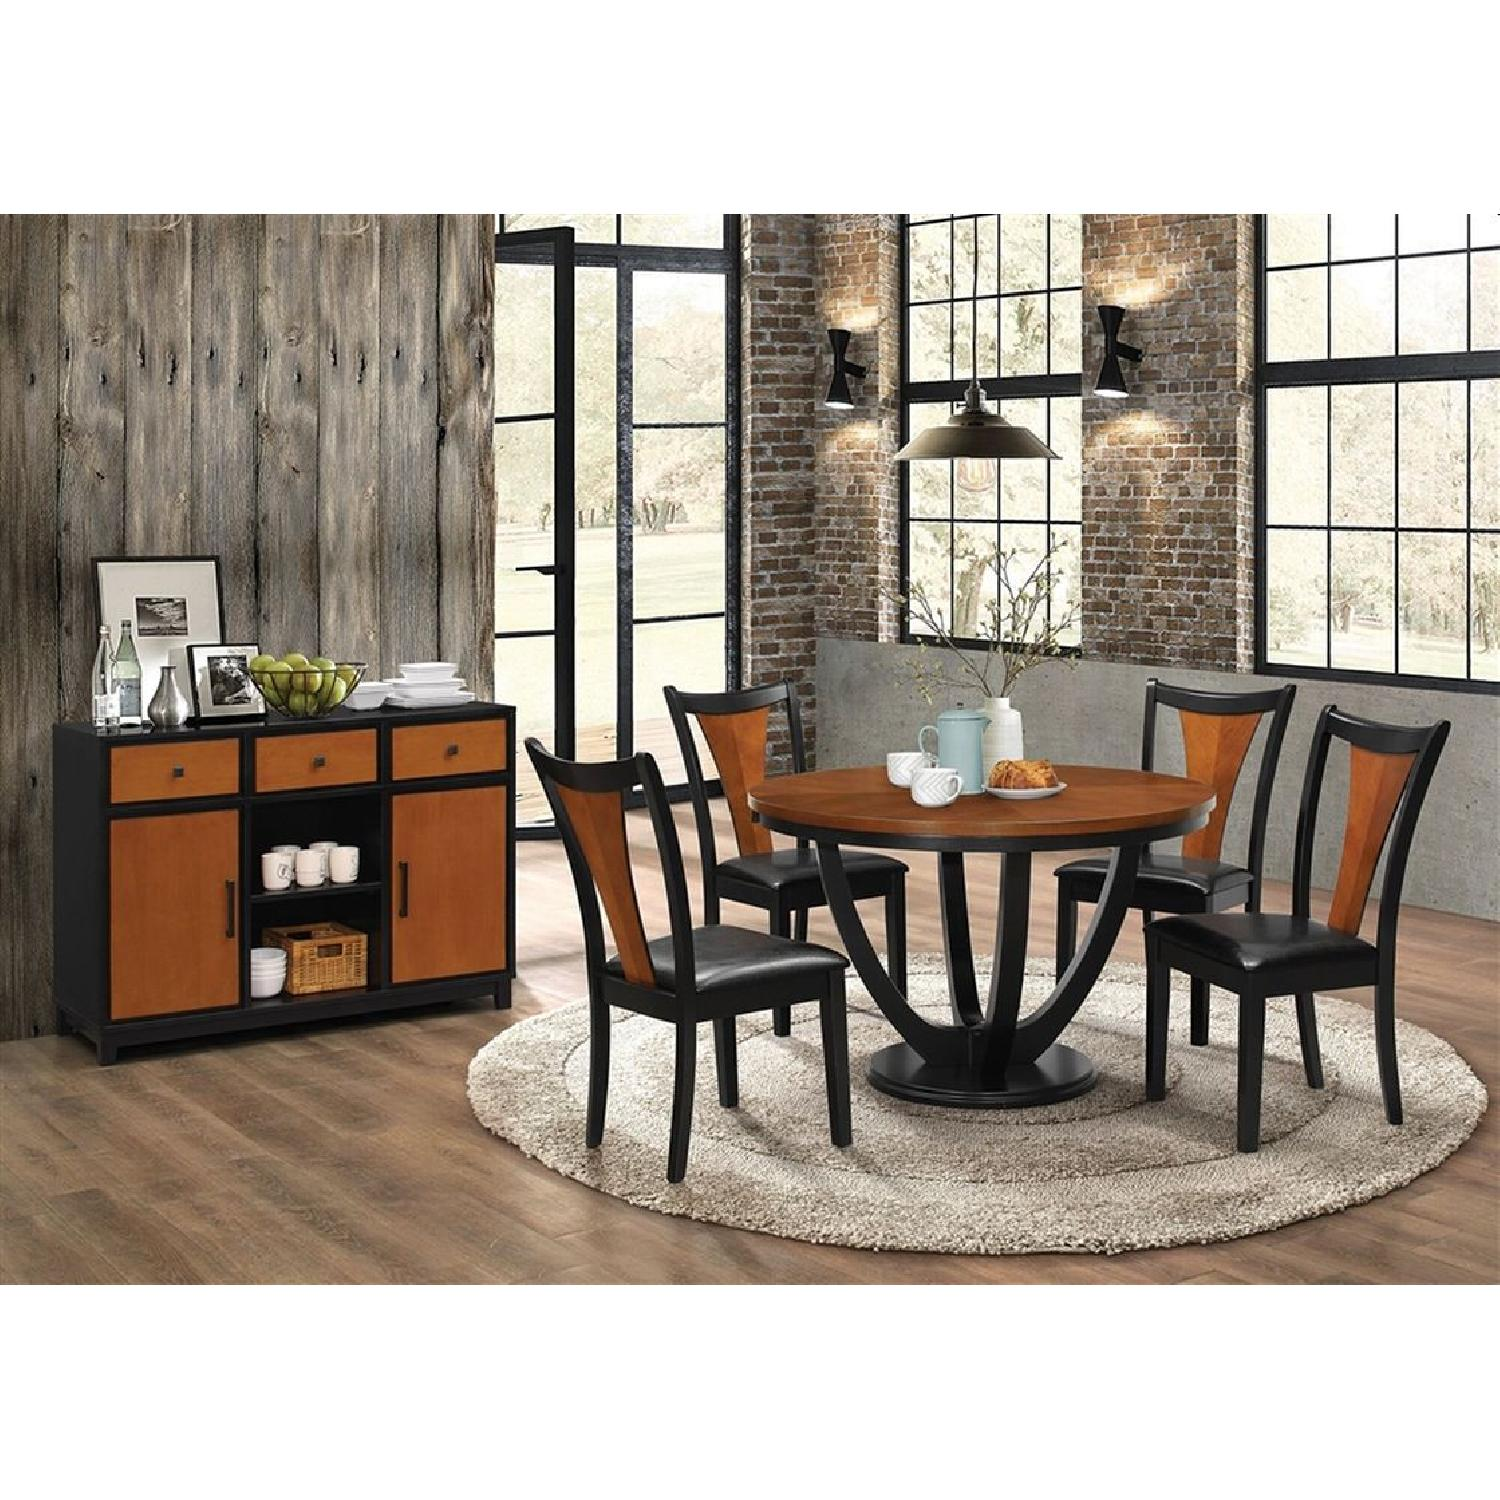 Dining Chair in 2-Tone Amber/Black Finish - image-4